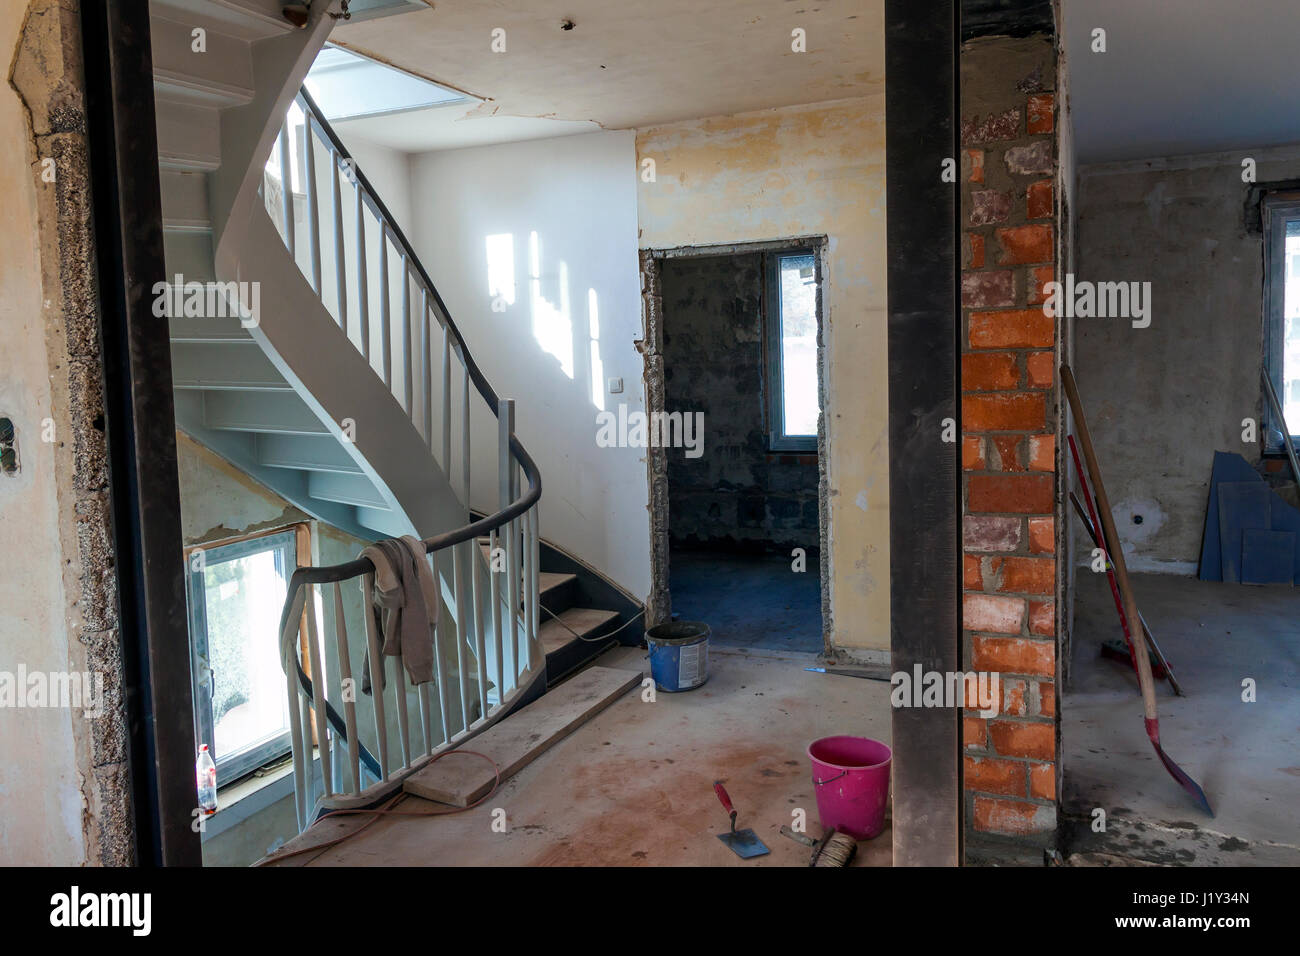 Renovation before and after stock photos renovation before and after stock images alamy - Renovating an apartment ...